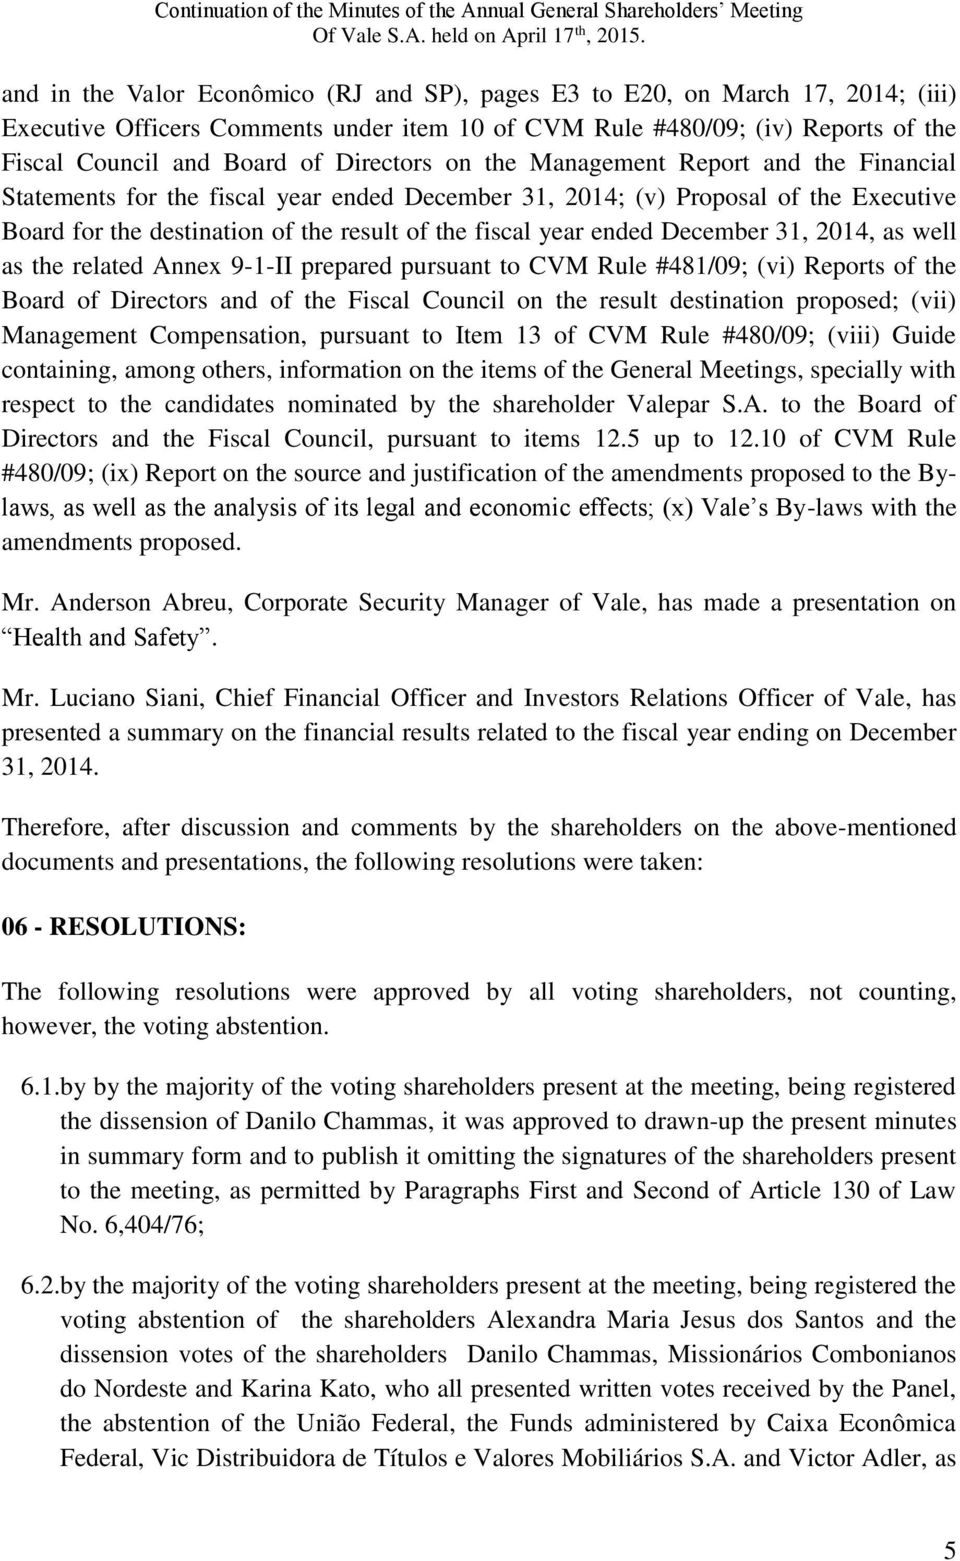 ended December 31, 2014, as well as the related Annex 9-1-II prepared pursuant to CVM Rule #481/09; (vi) Reports of the Board of Directors and of the Fiscal Council on the result destination